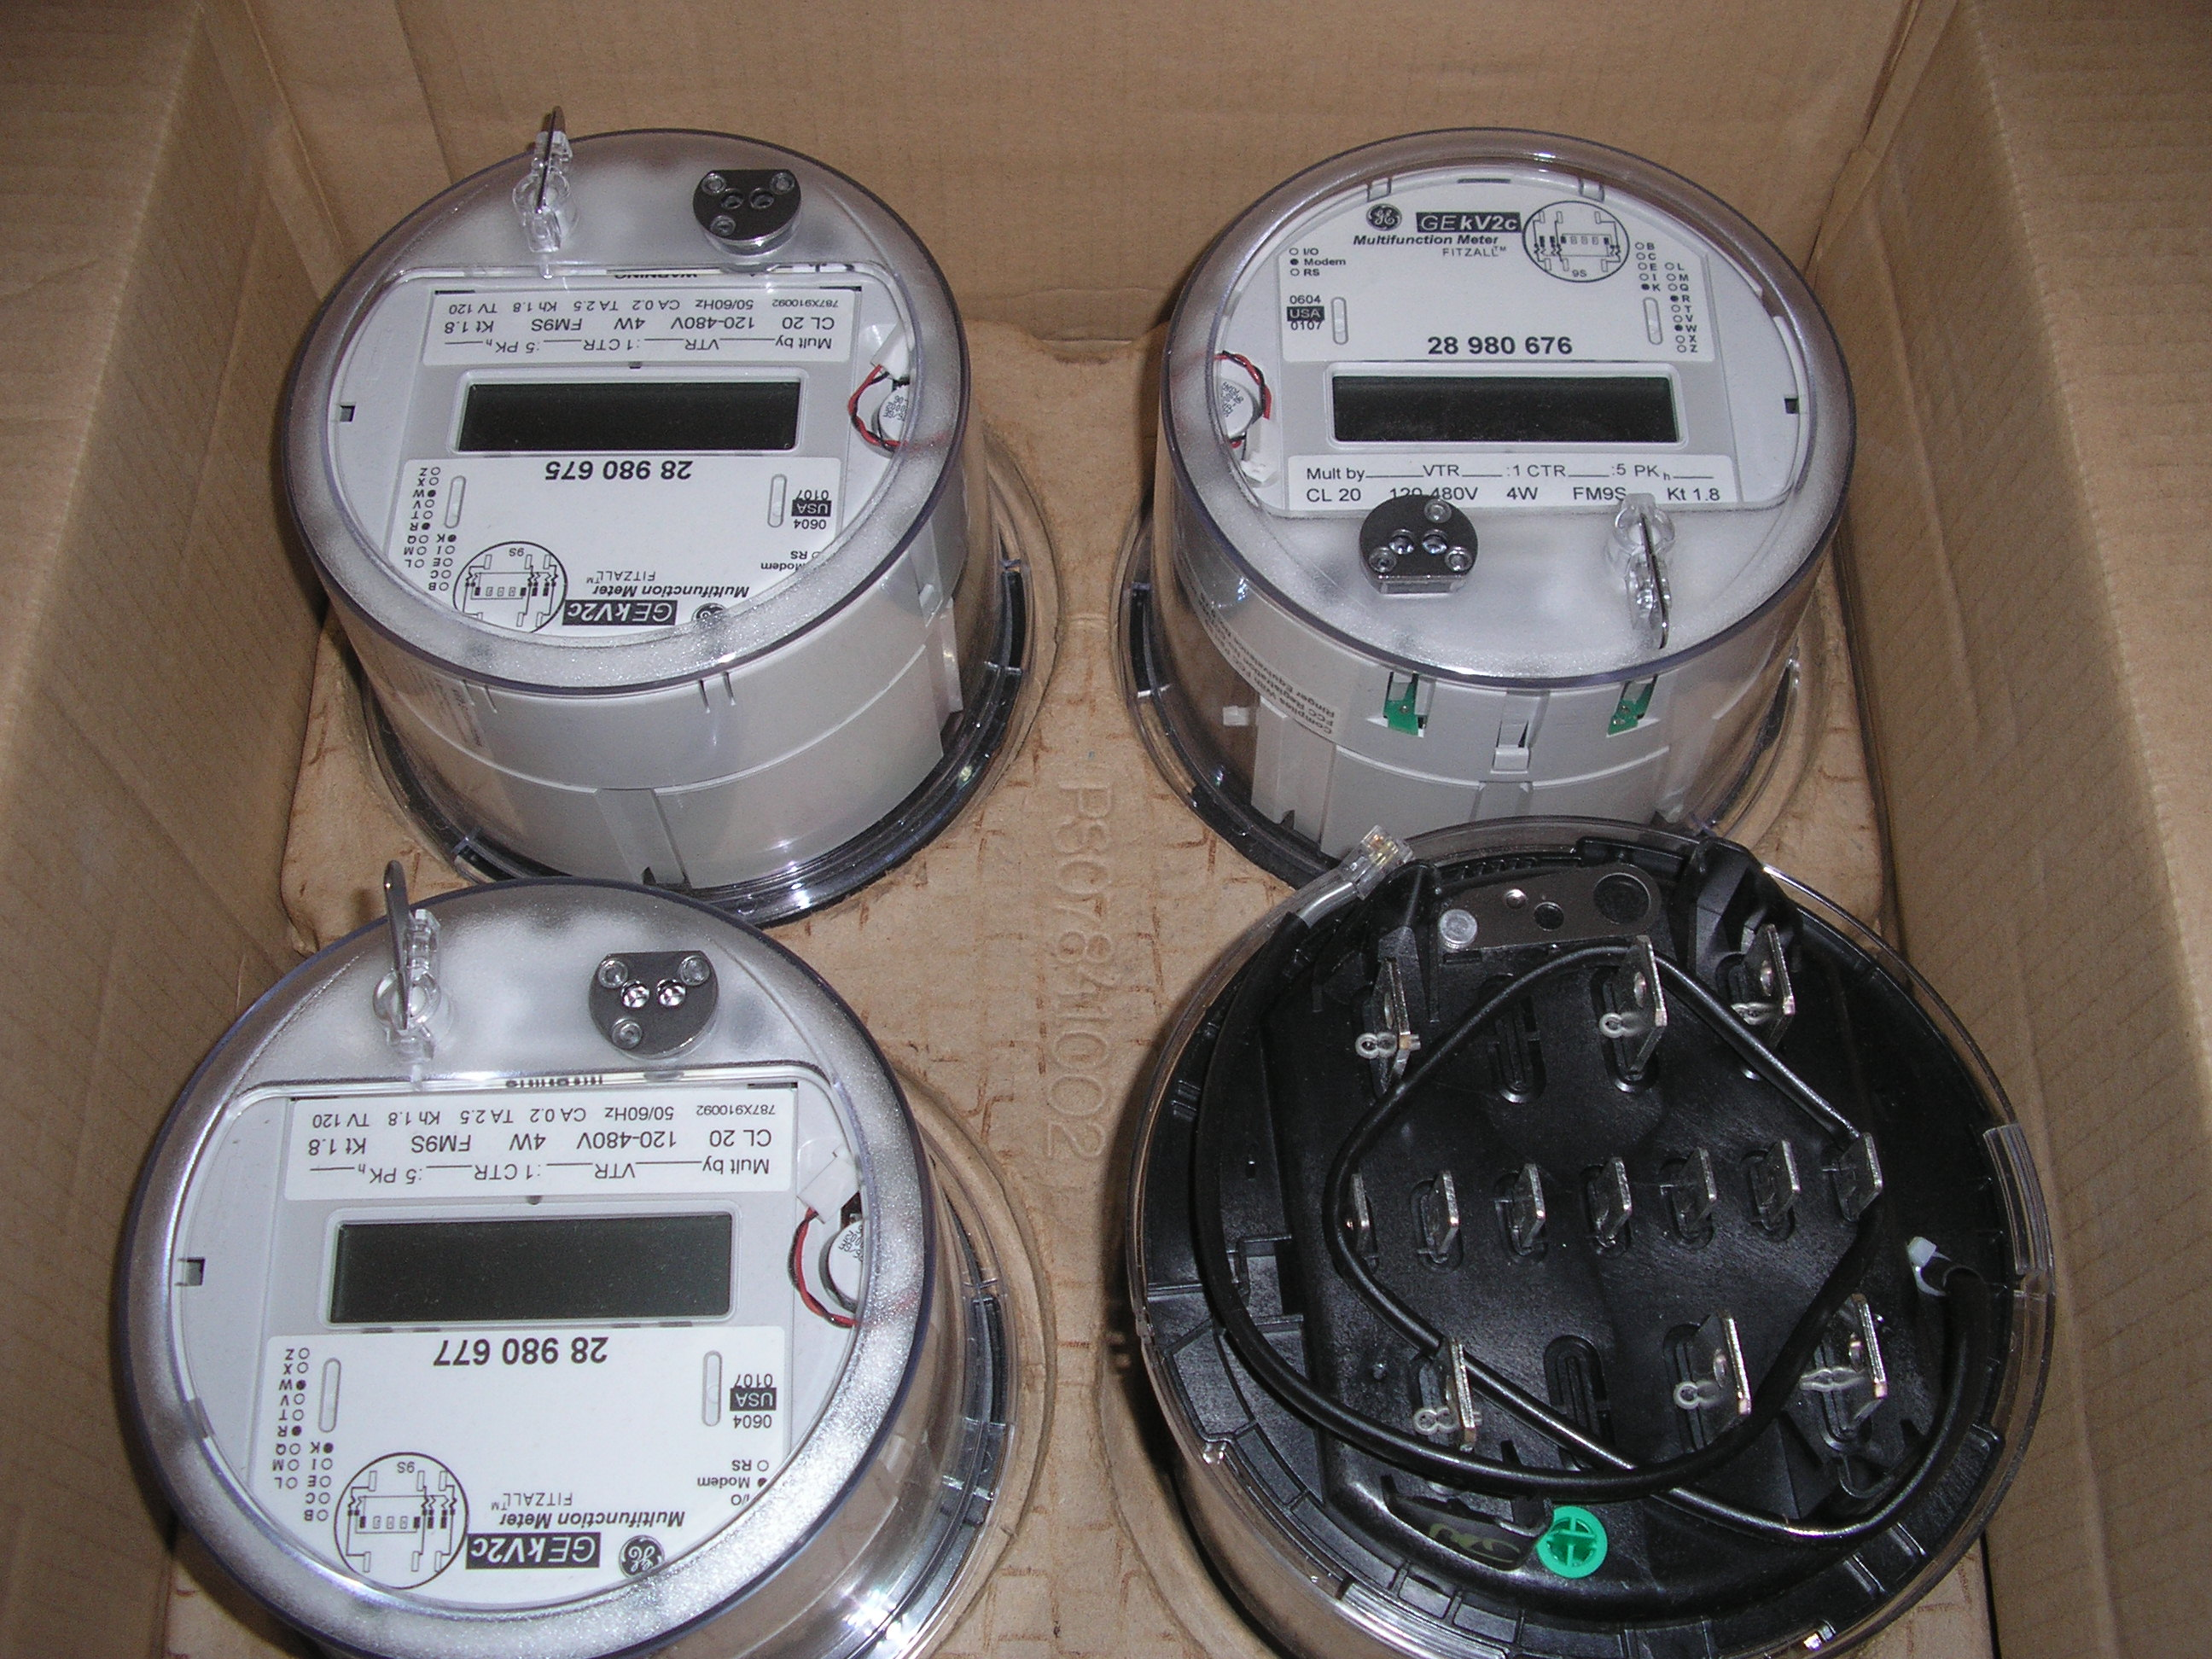 GE KV2C New SolidST 4Meter used electric meters ge kilowatt hour meter wiring diagram at alyssarenee.co